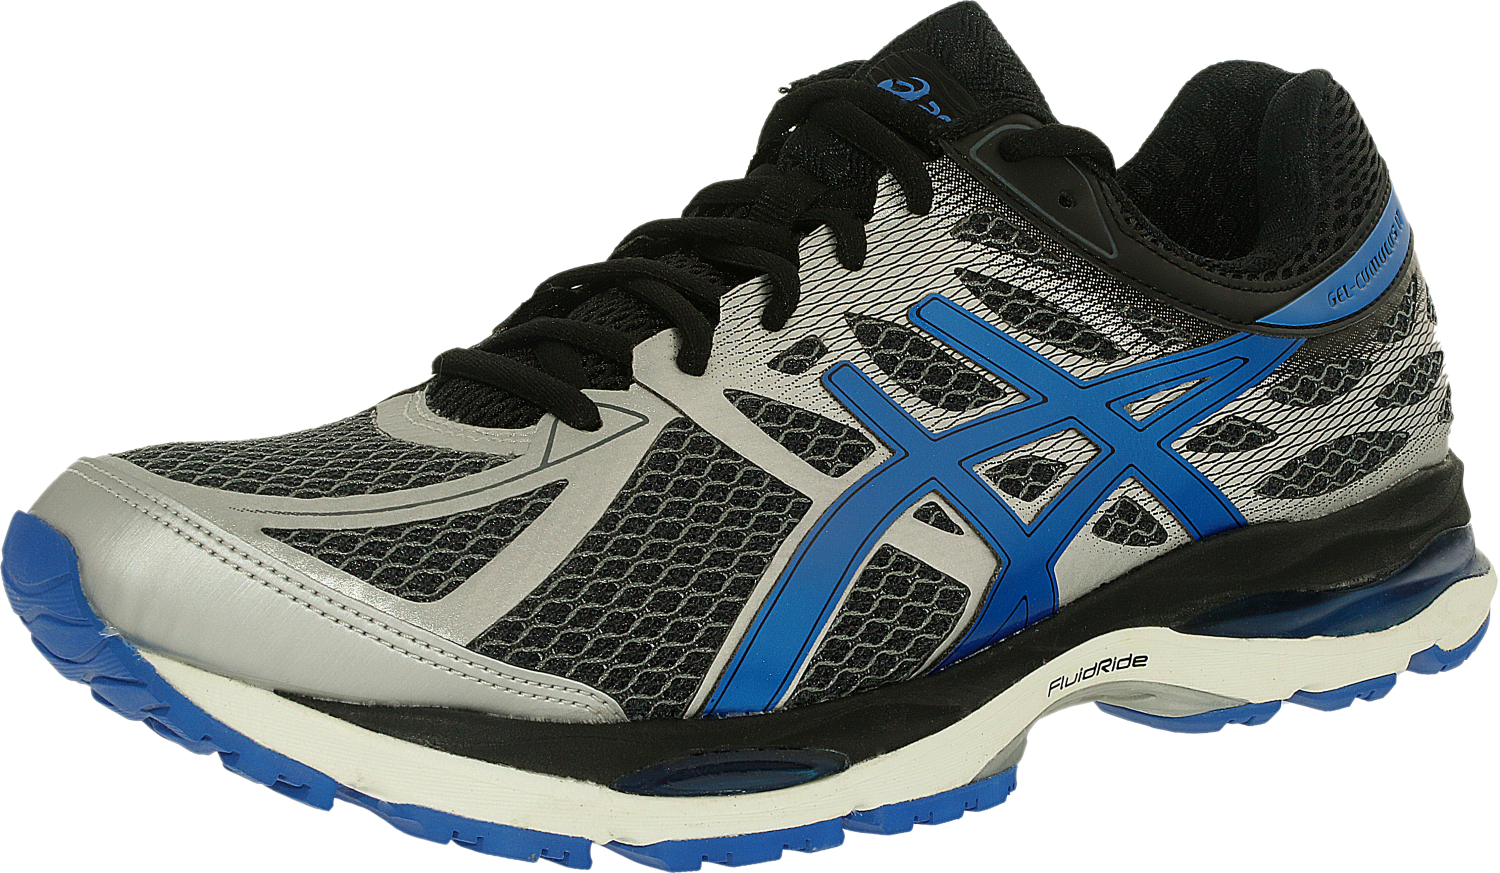 asics s gel cumulus 17 ankle high tennis shoe ebay